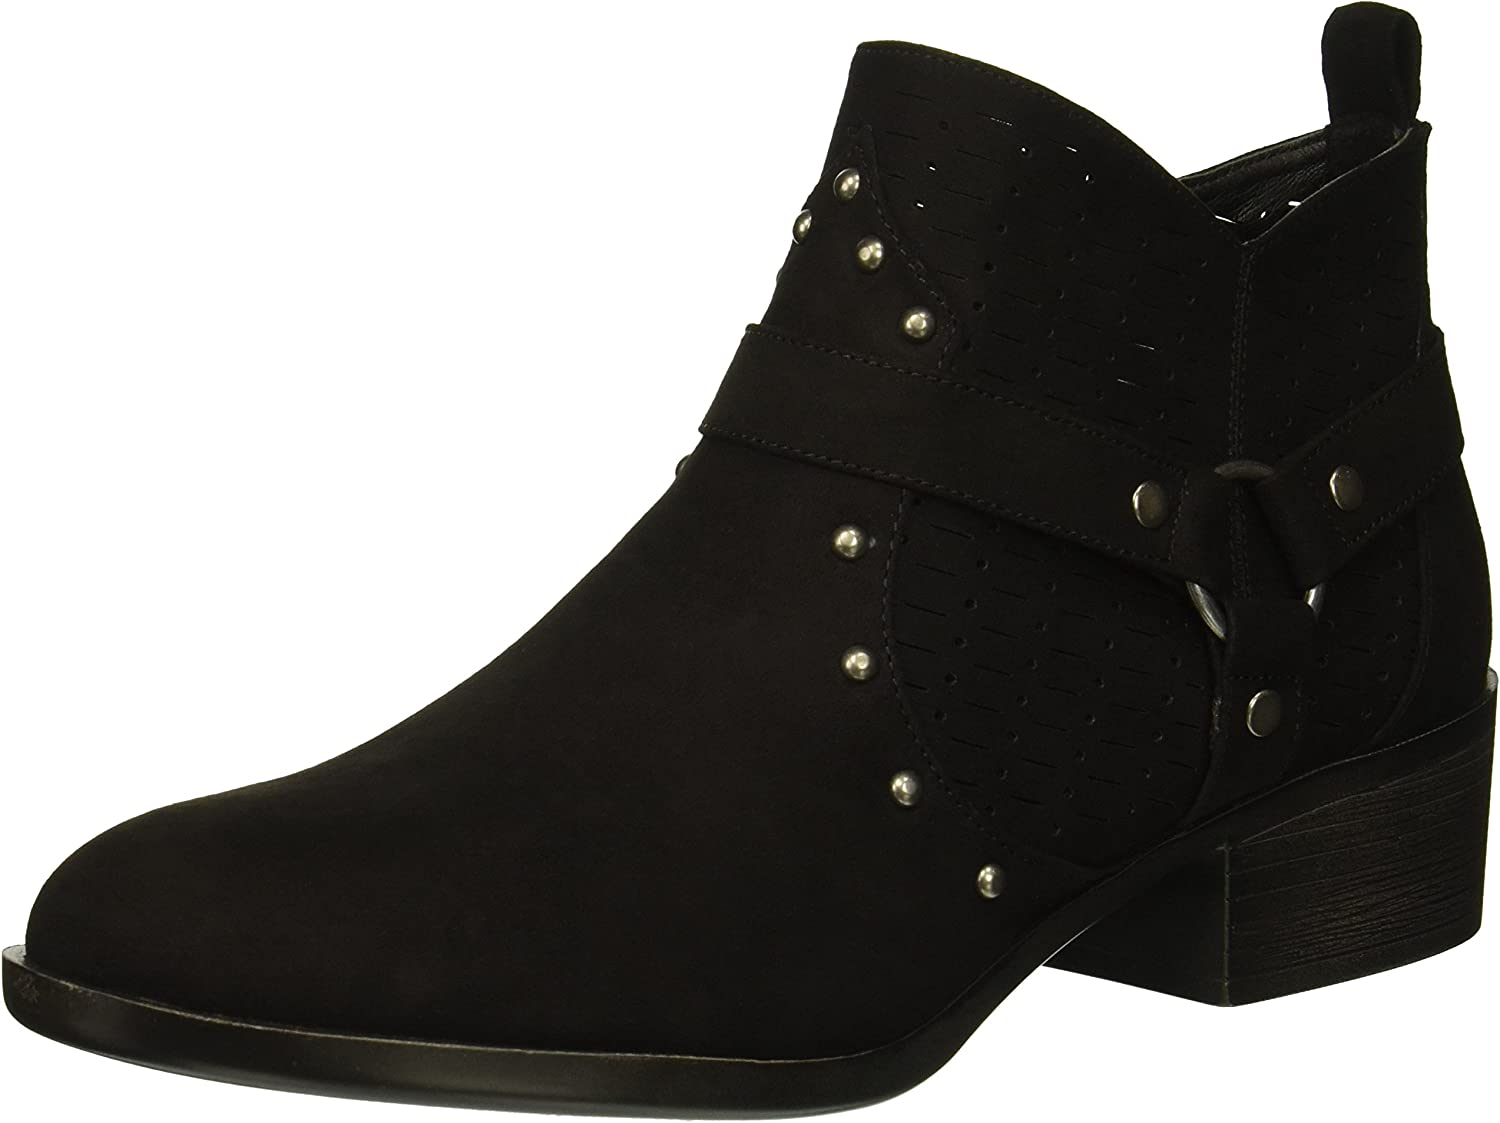 Dirty Laundry Women's Wyatt Ankle Boot